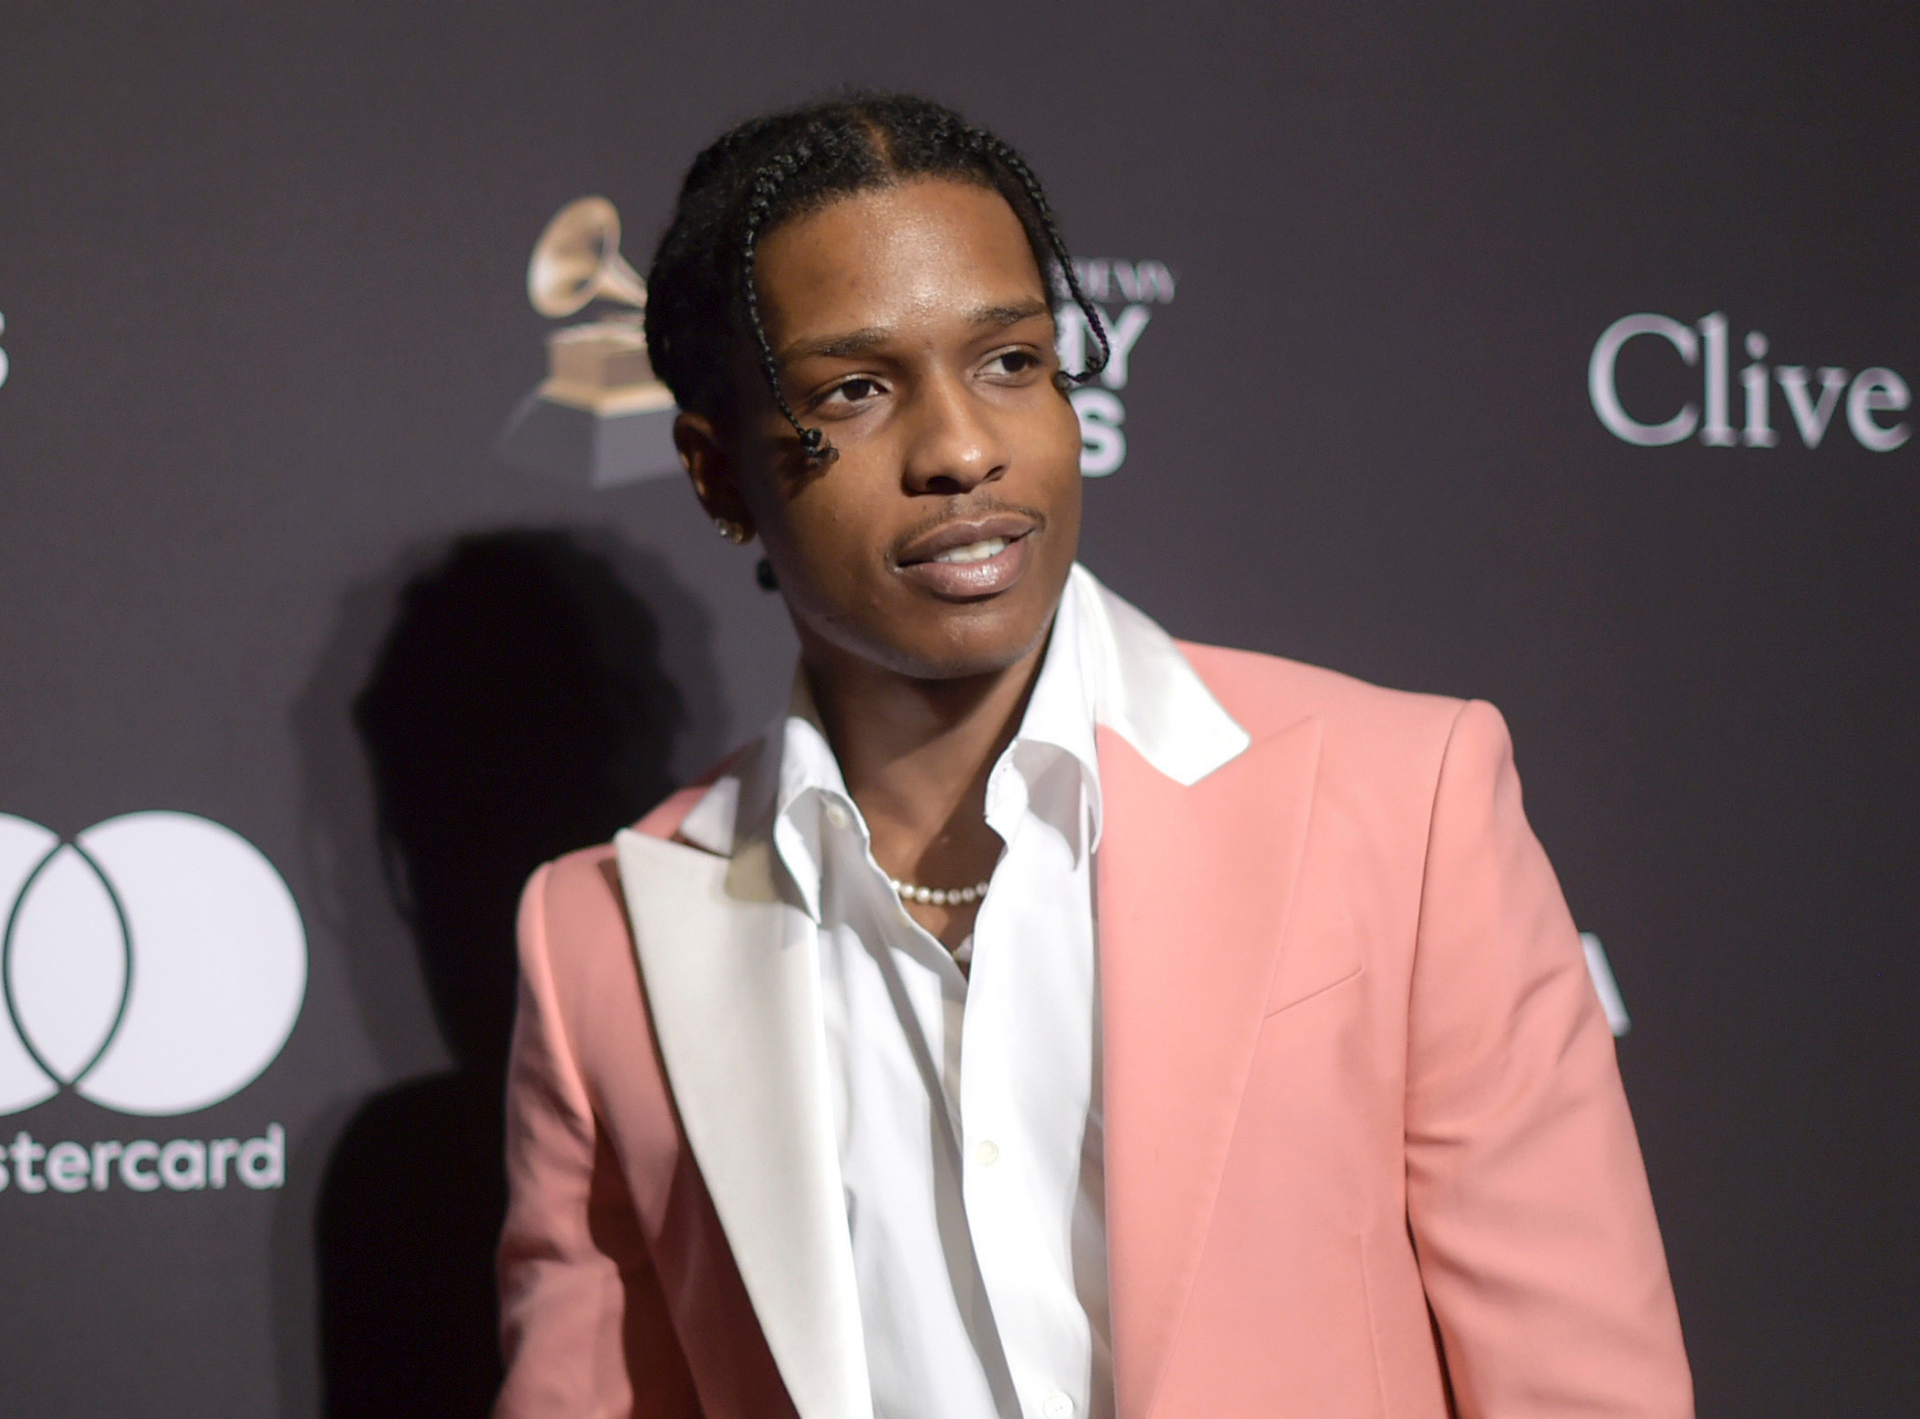 Westlake Legal Group ContentBroker_contentid-f91af62dfdab4c6796a66078e84bf12d A$AP Rocky lands in Los Angeles after release from Swedish jail fox-news/world/crime fox-news/us/us-regions/west/california fox-news/entertainment/music fox-news/entertainment/events/in-court fox news fnc/entertainment fnc Danielle Wallace d186b5eb-8157-5861-8cb7-7737cd008a60 article